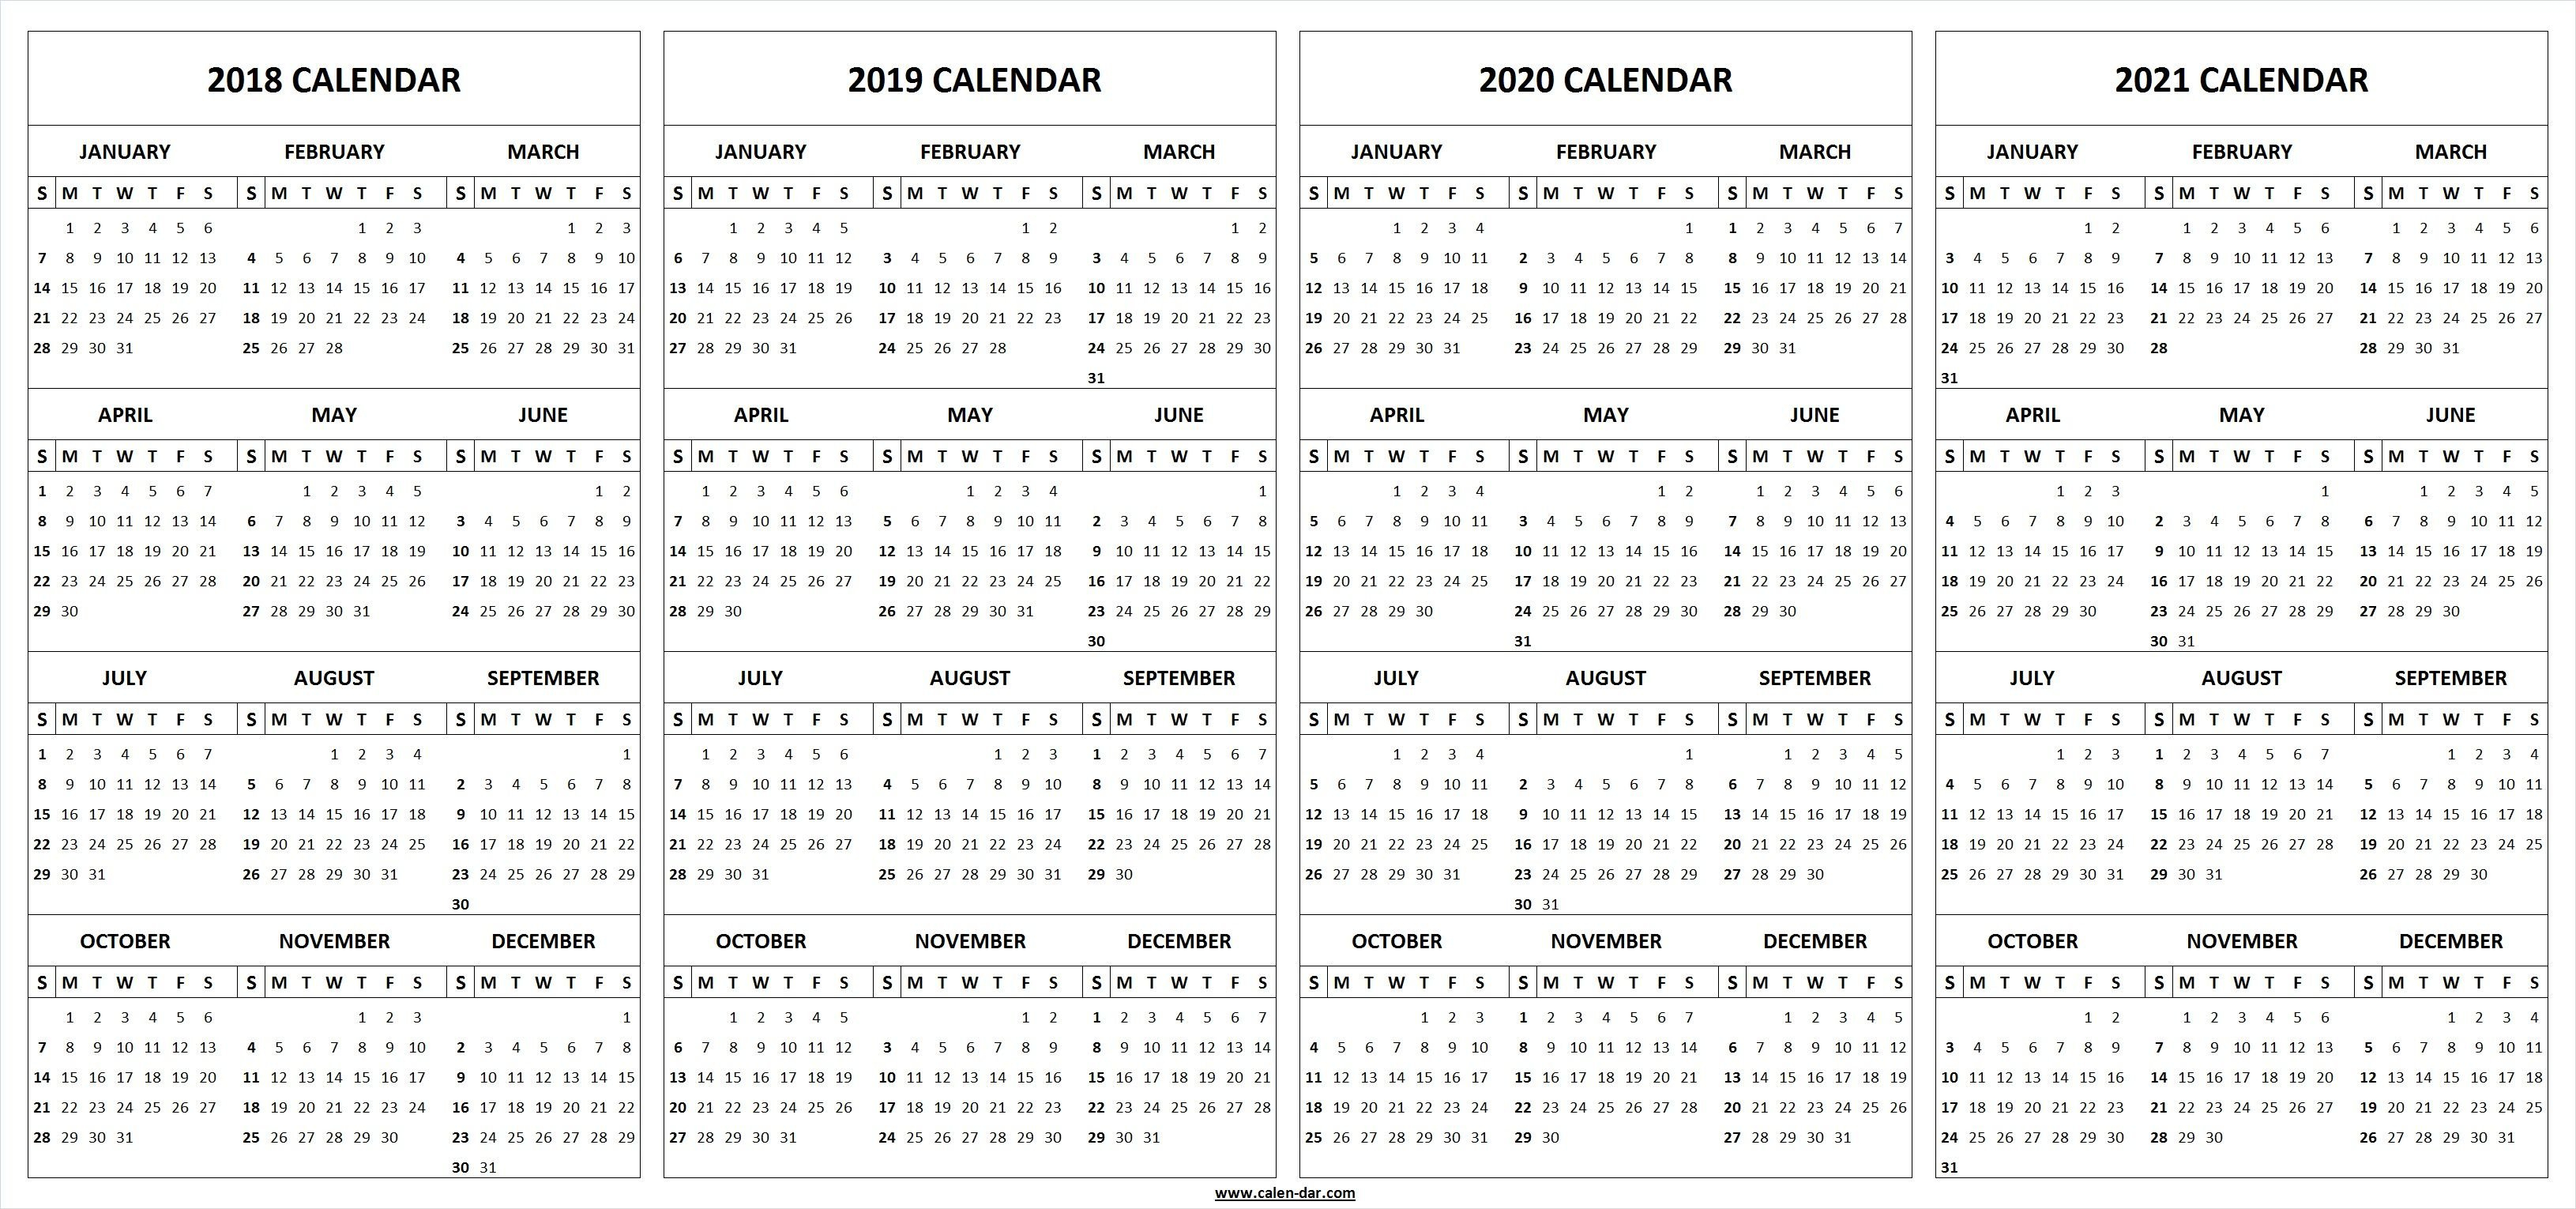 Printable 2018 2019 2020 2021 Calendar Template (With Images Printable 5 Year Calendar